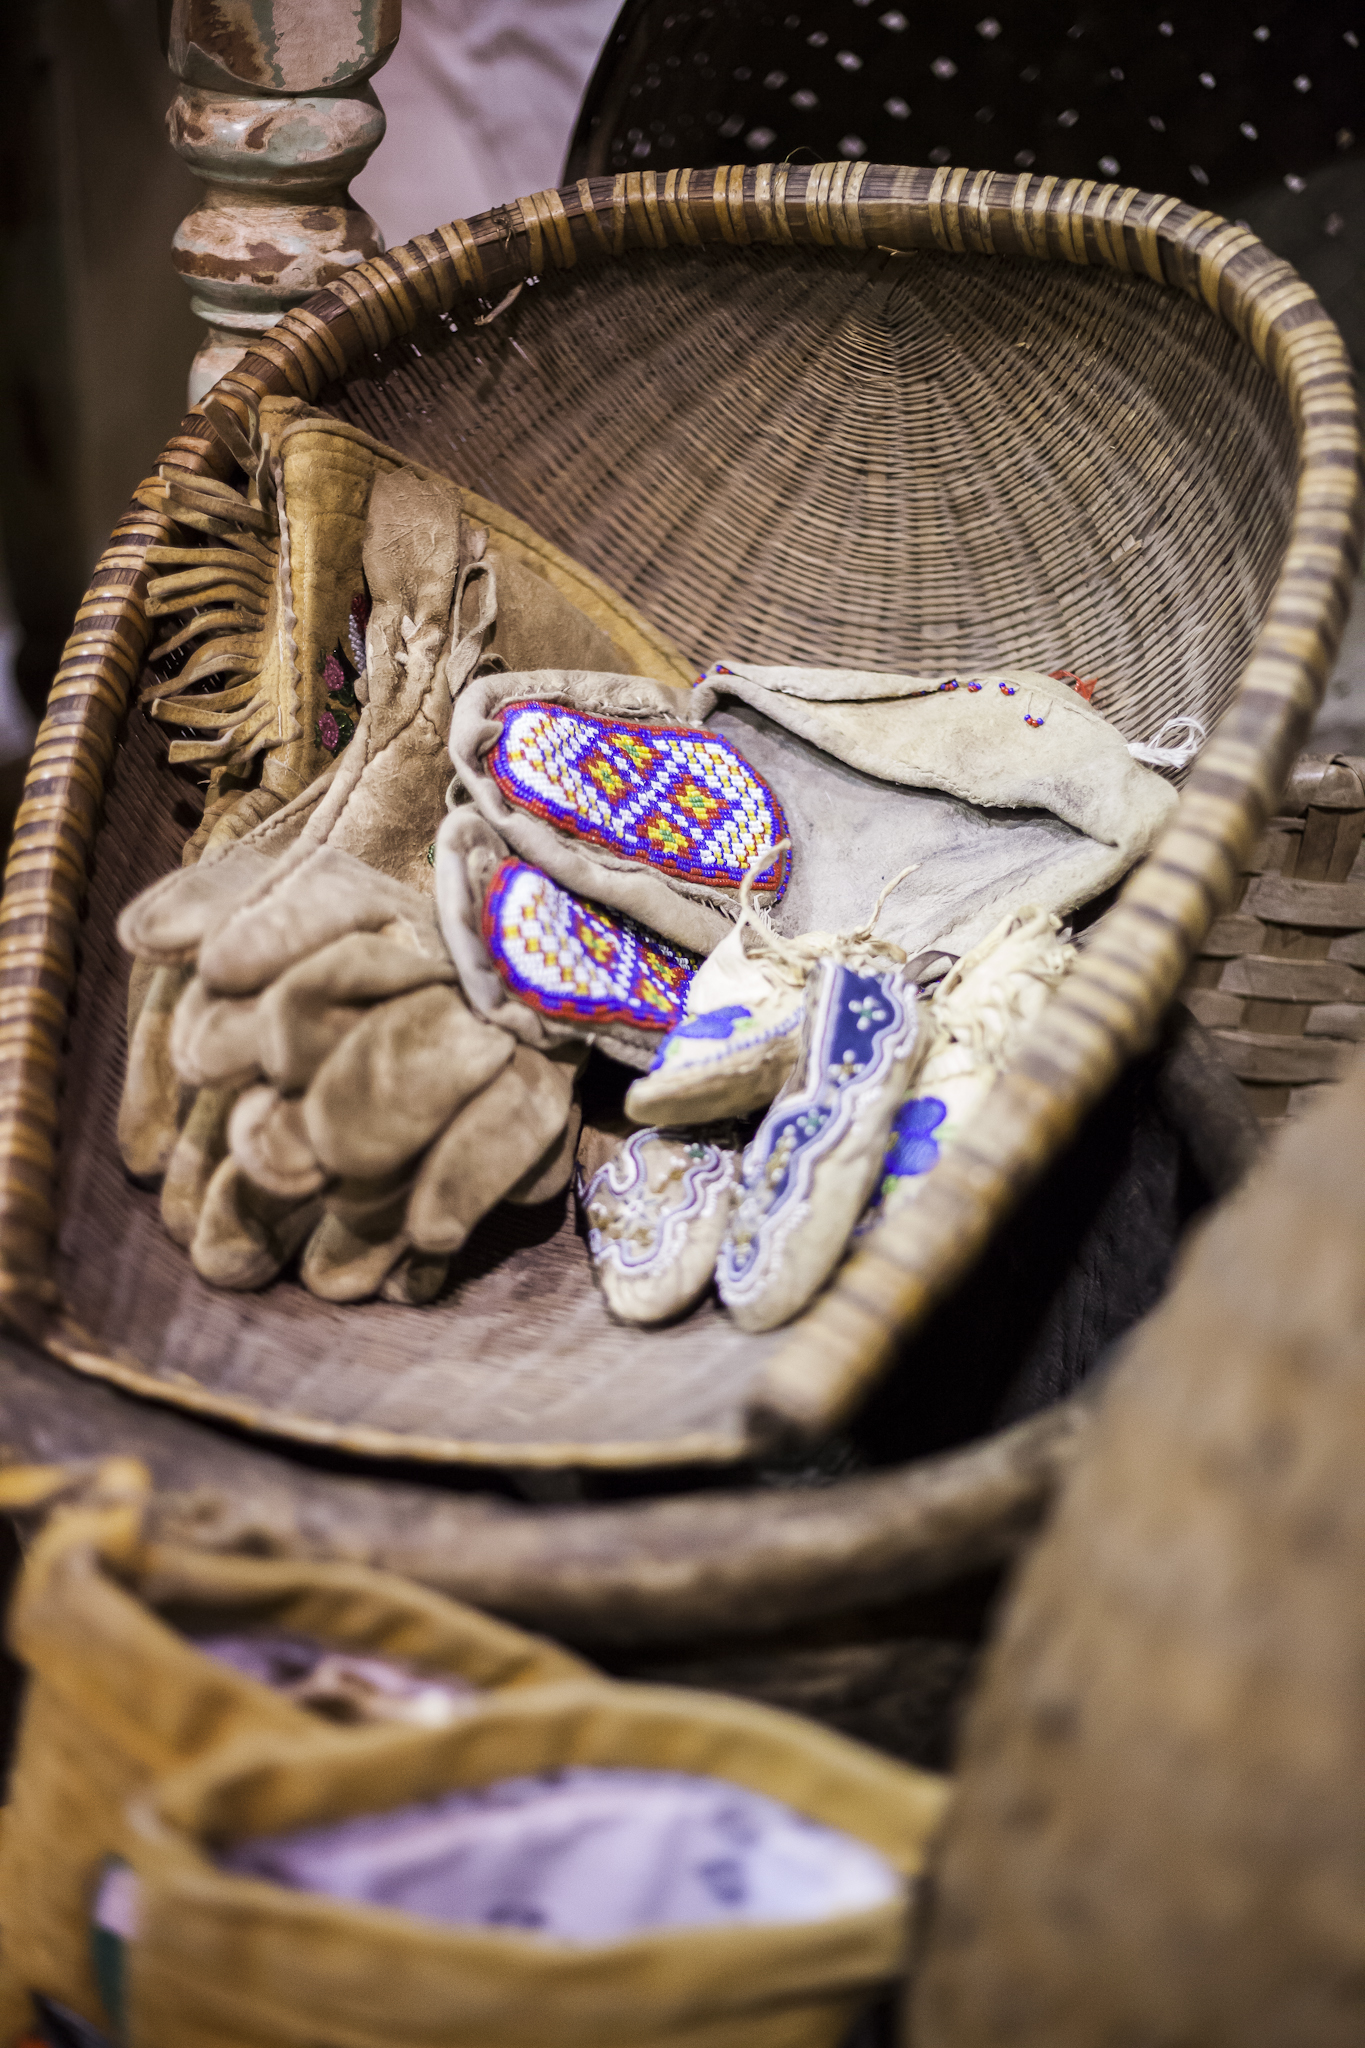 Antique Native American Beaded Gloves in a Handwoven Basket with Mockasins